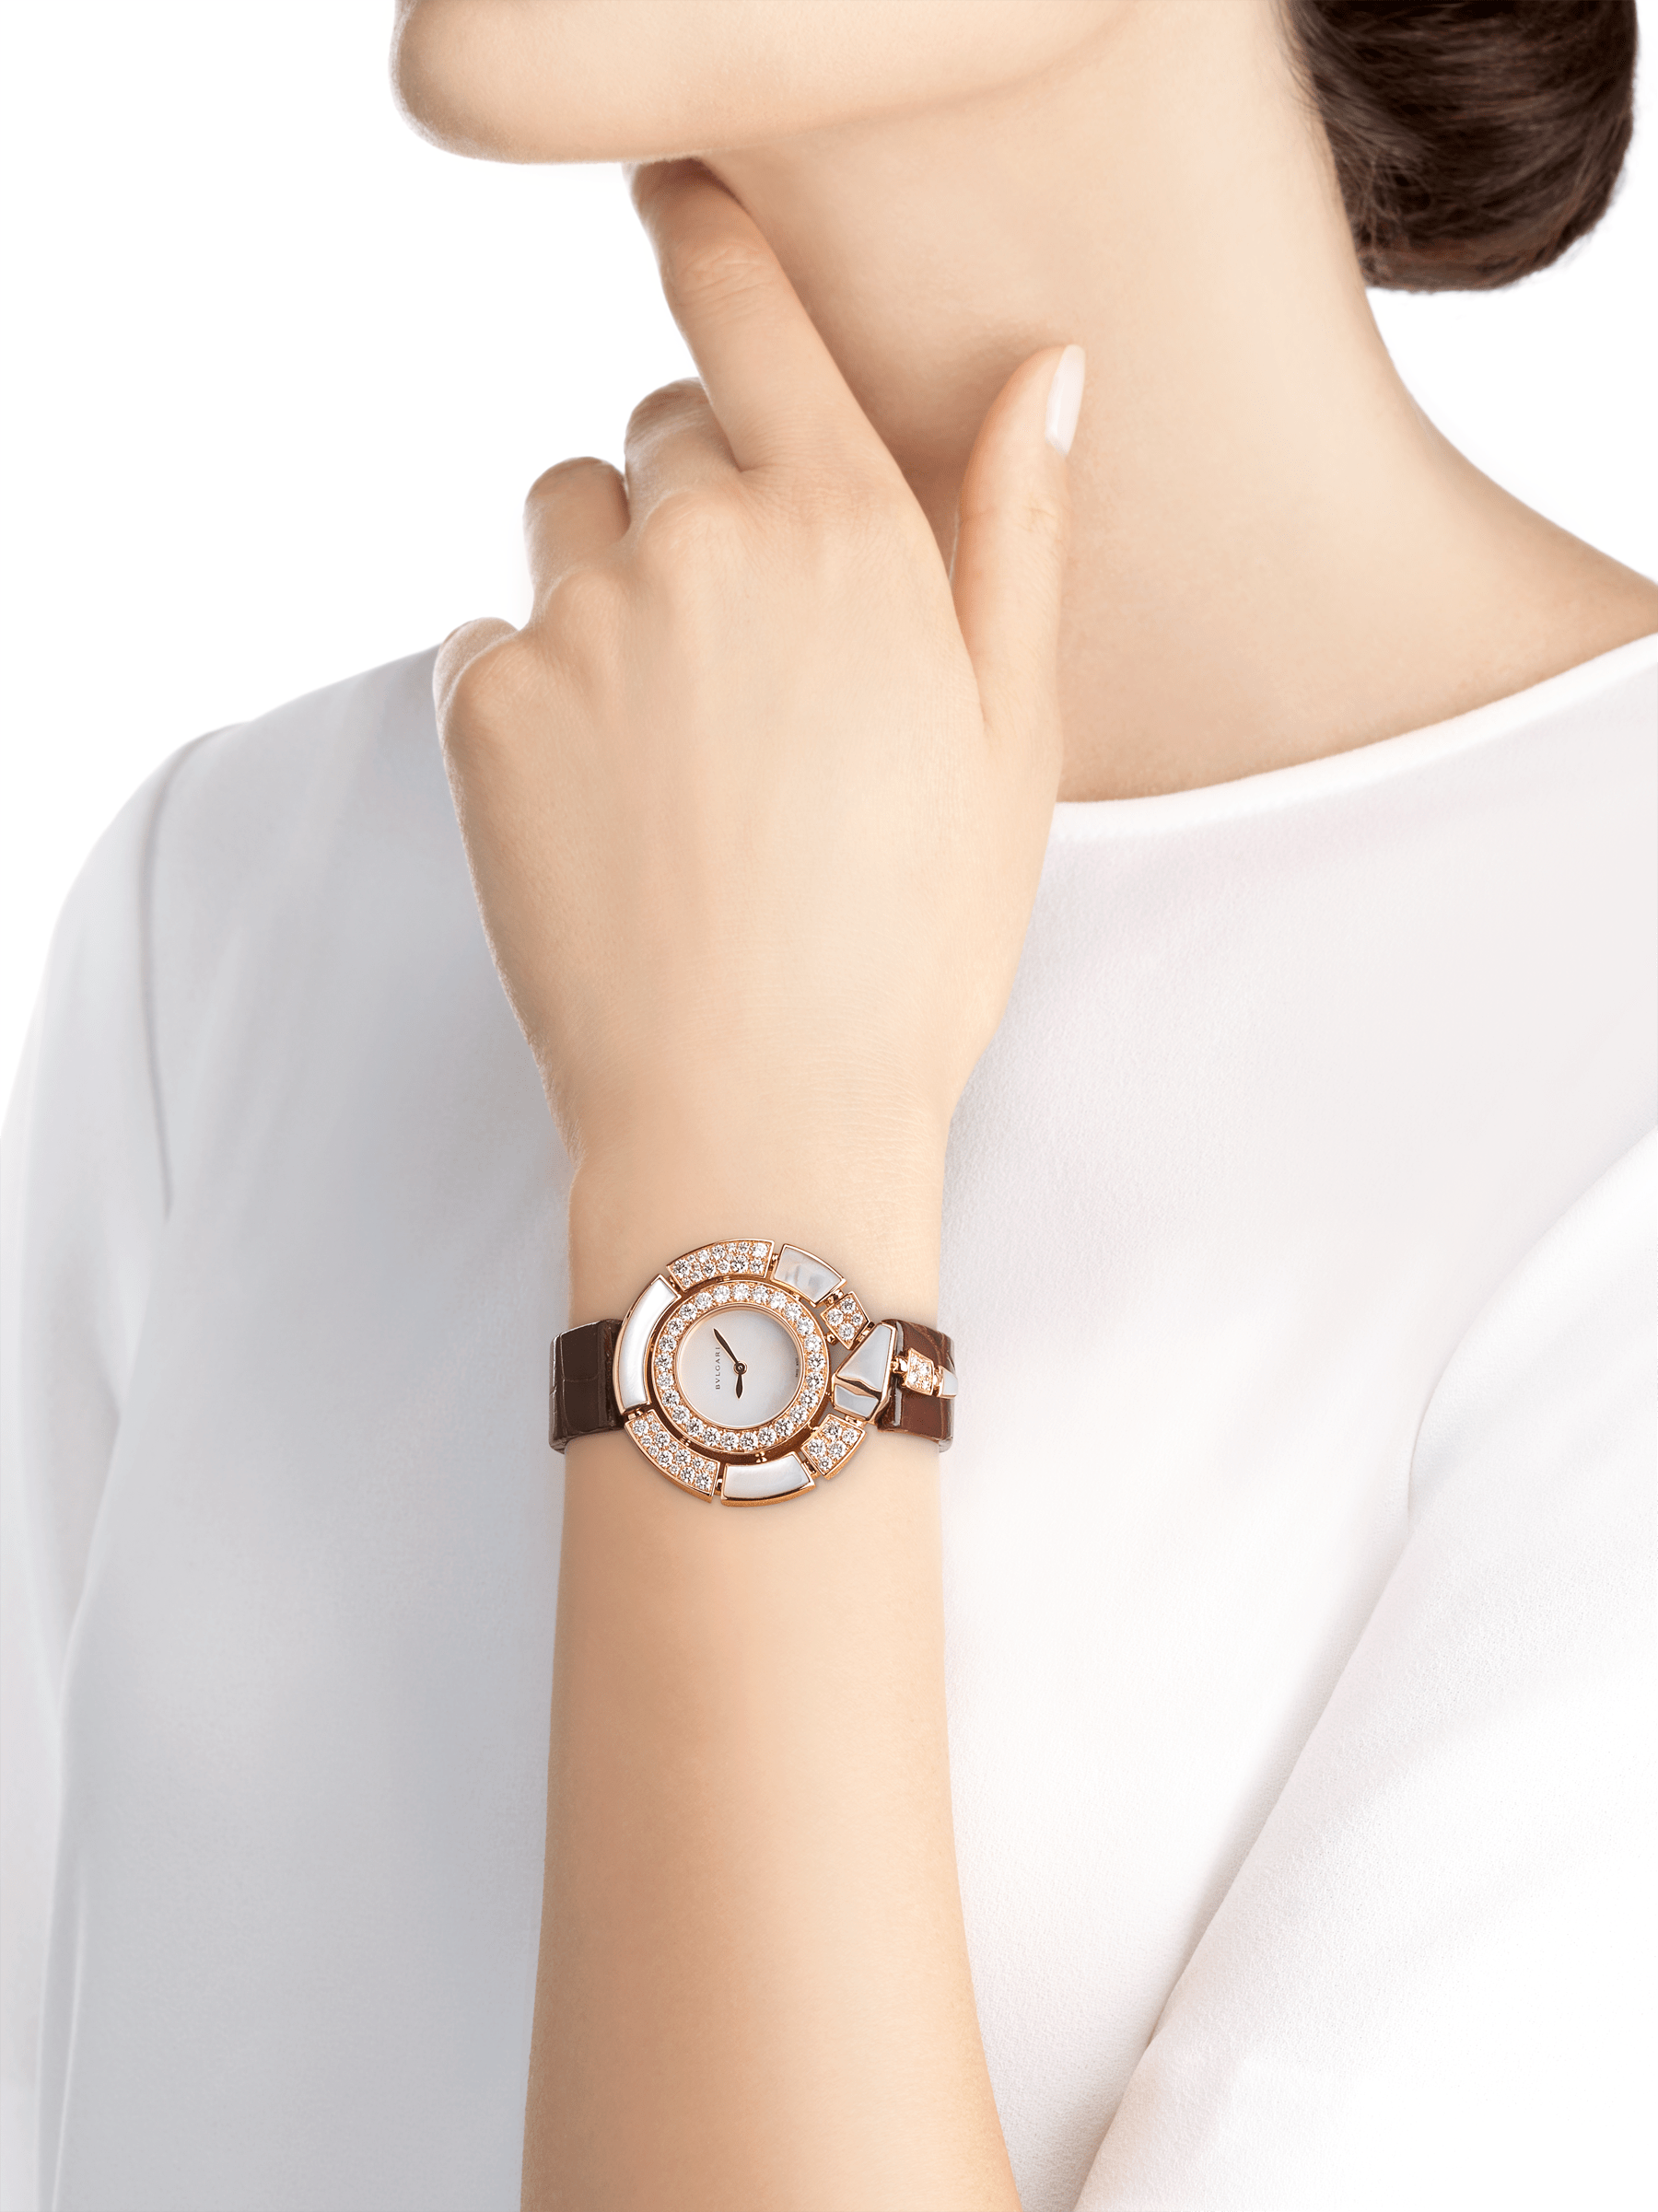 Serpenti Incantati watch with 18 kt rose gold case set with brilliant-cut diamonds and mother-of-pearl elements, mother-of-pearl dial and purple alligator bracelet 102872 image 3